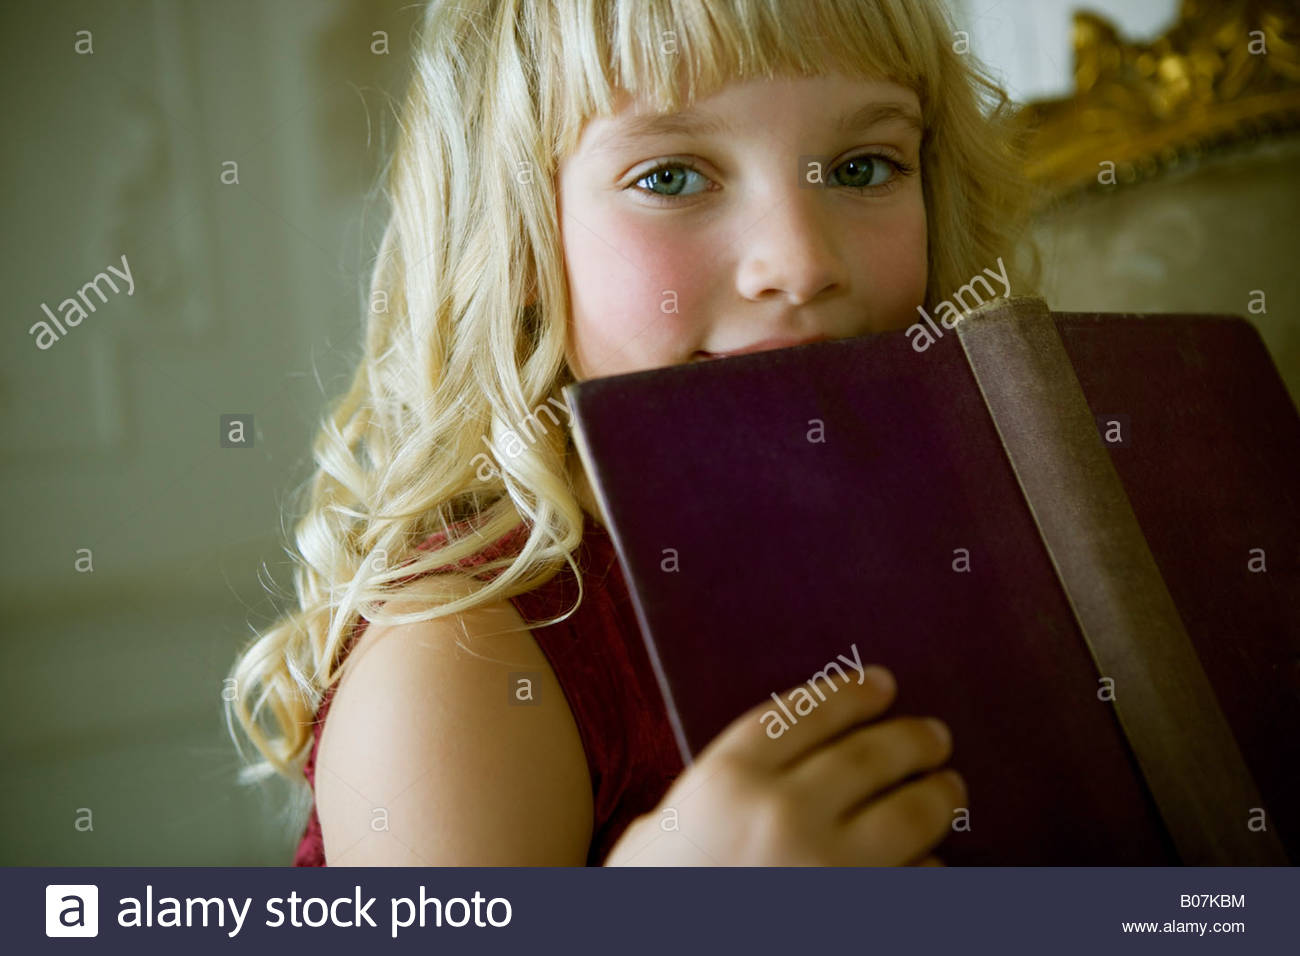 Portrait of a little girl reading a book - Stock Image